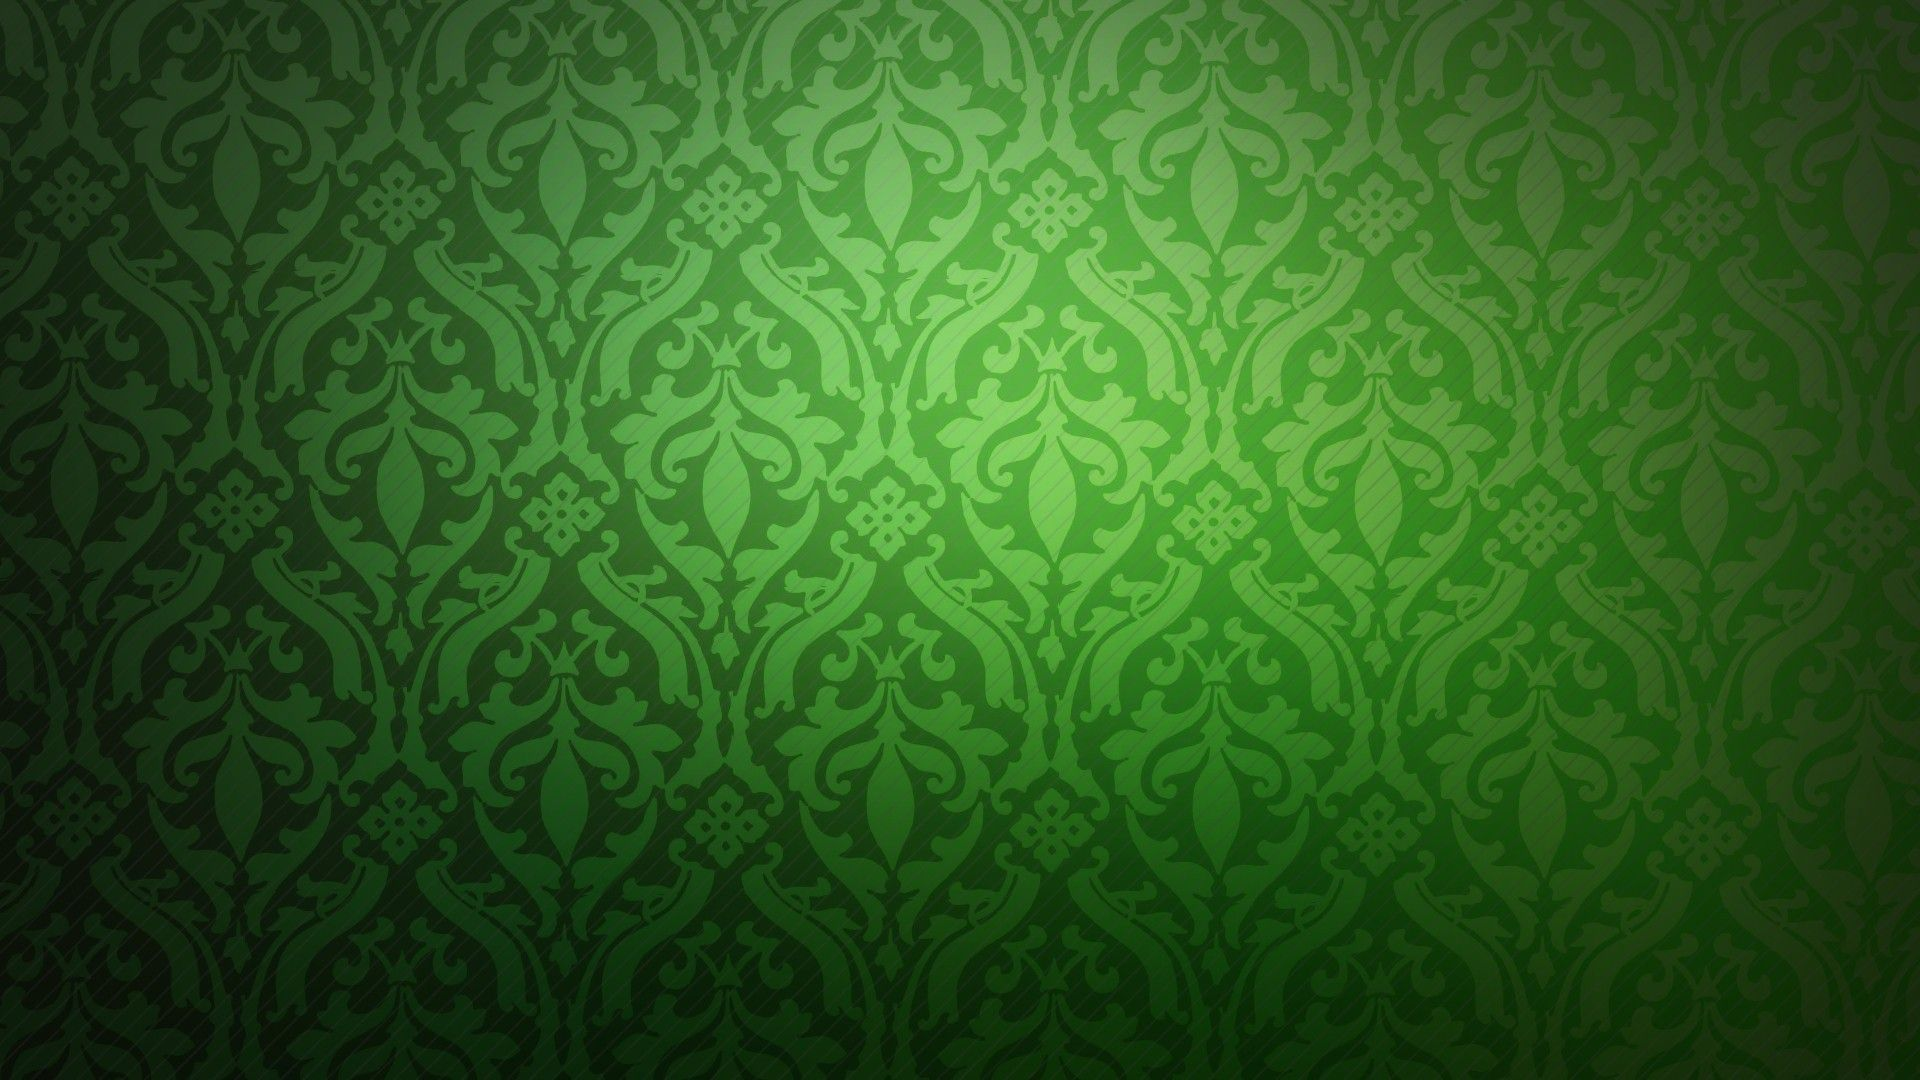 Green Wallpaper Green Wallpaper Green Backgrounds Vintage Wallpaper